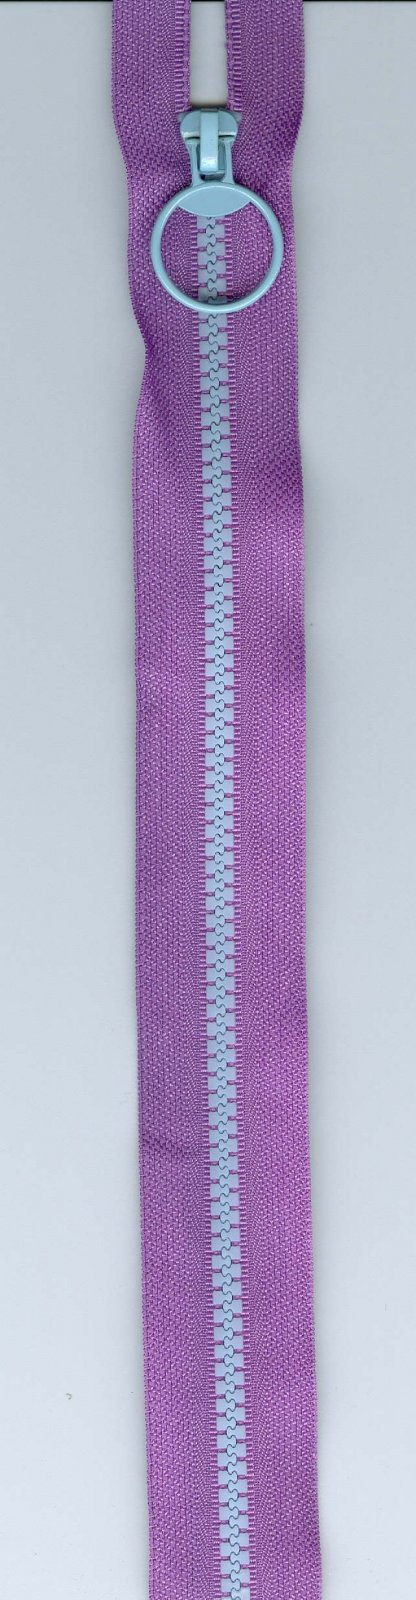 10 Zipper #5 - Purple w/ Blue Teeth